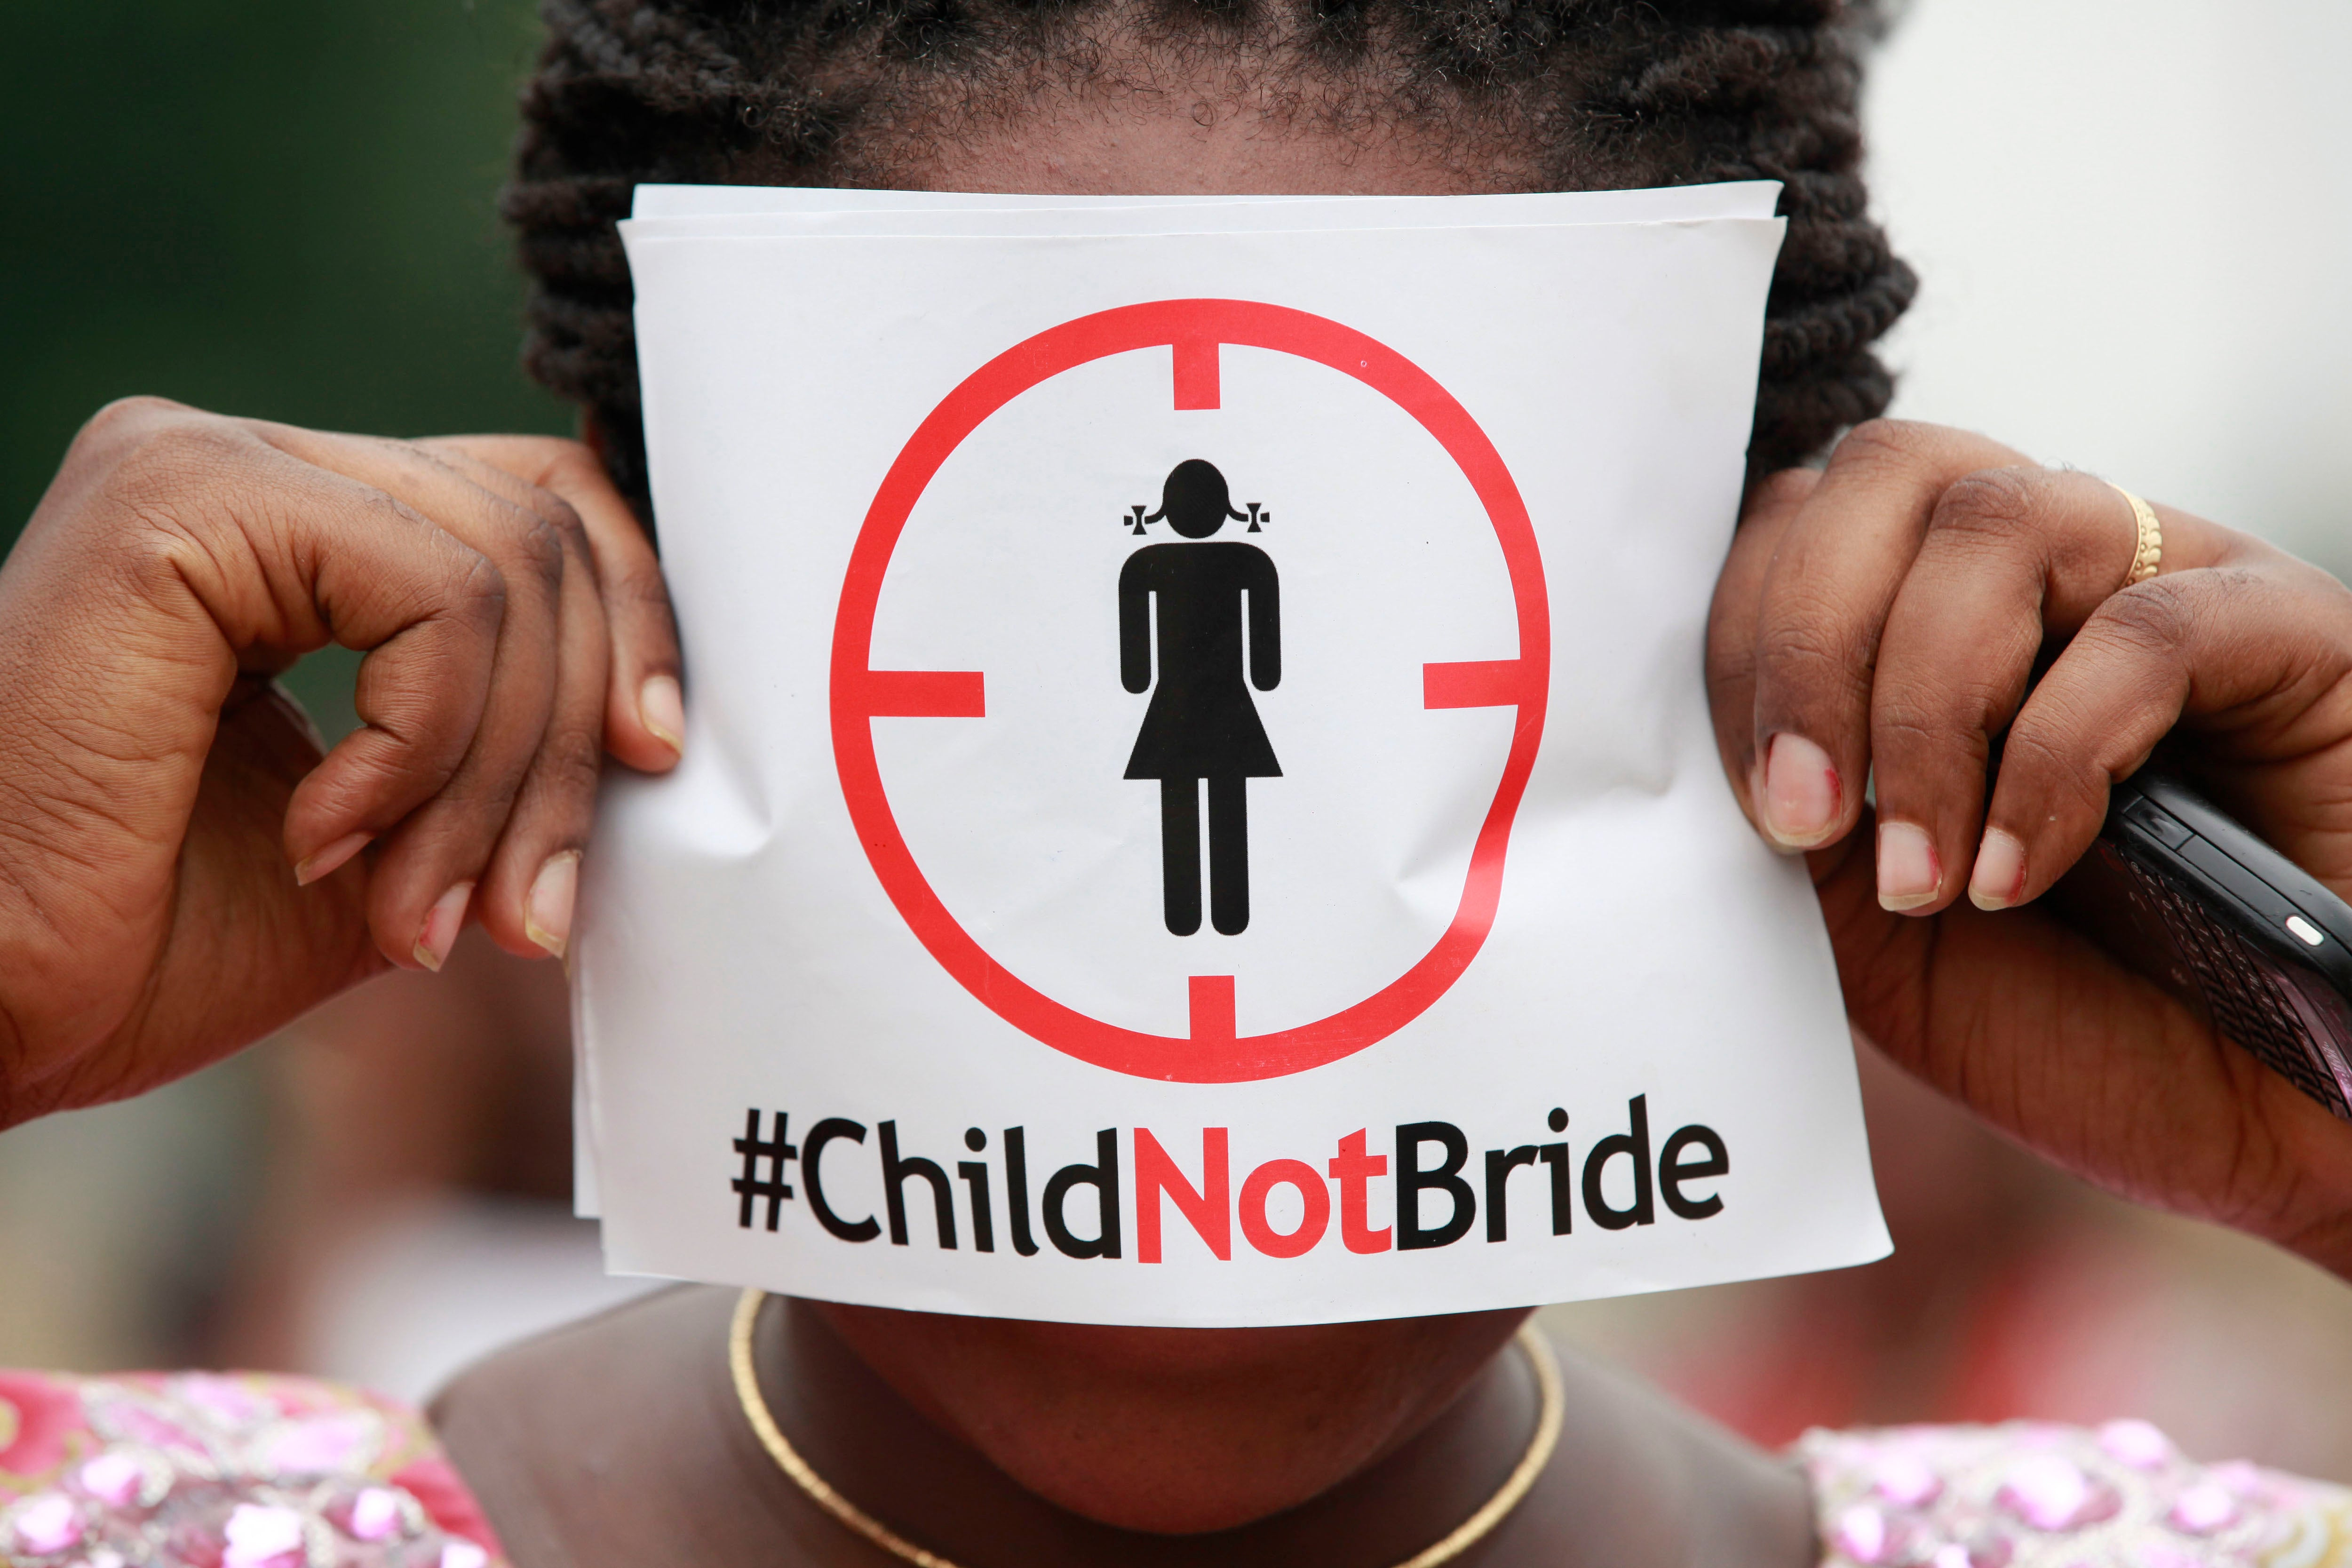 Nigerian States Should Protect Girls by Ending Child Marriage